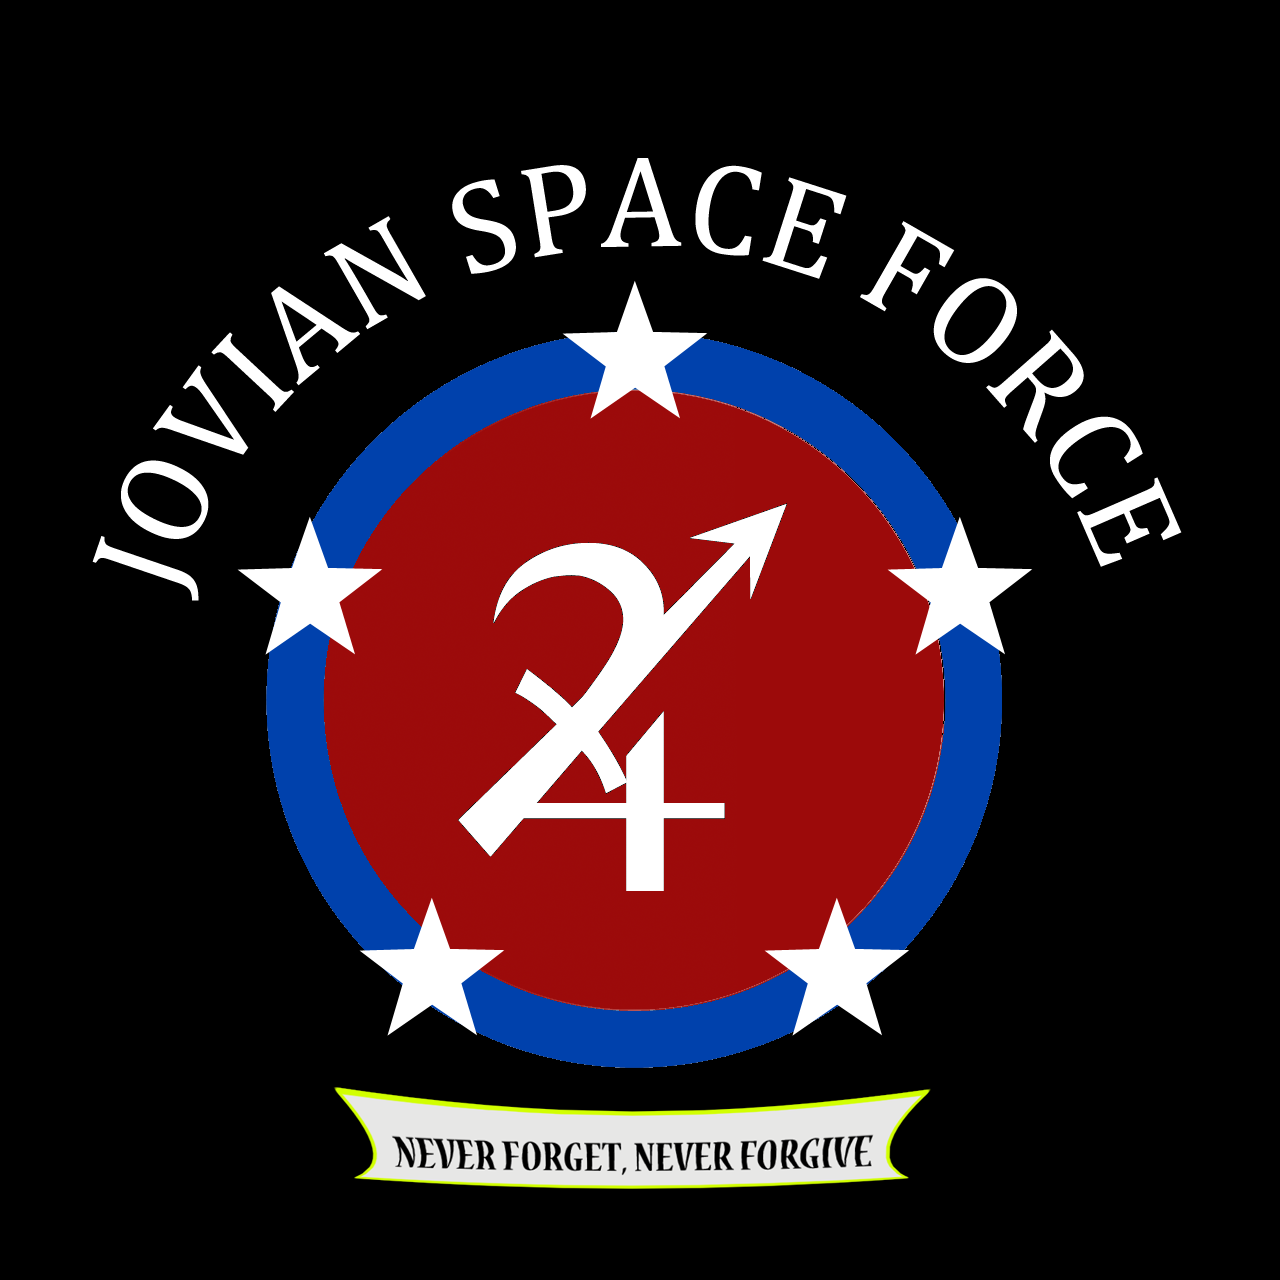 (image: http://posthuman.karmavector.org/images/jovian_space_force.png)